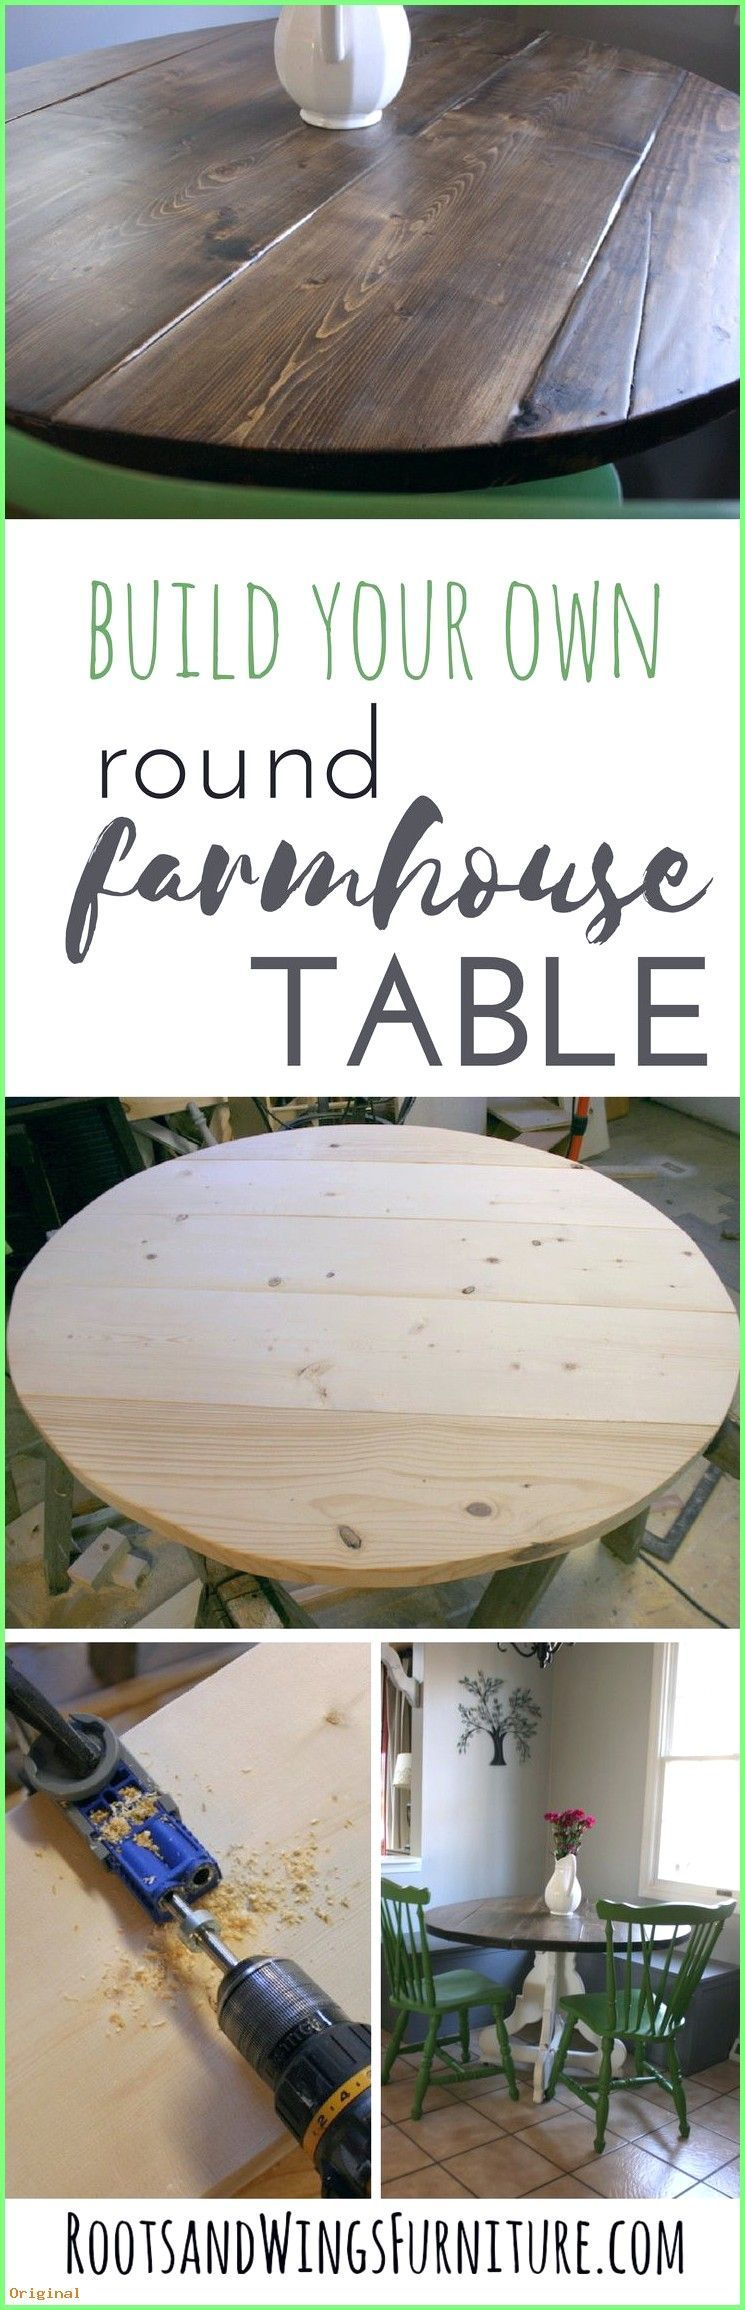 50 Wallpaper Diy Furniture How To Build A Custom Sized Round